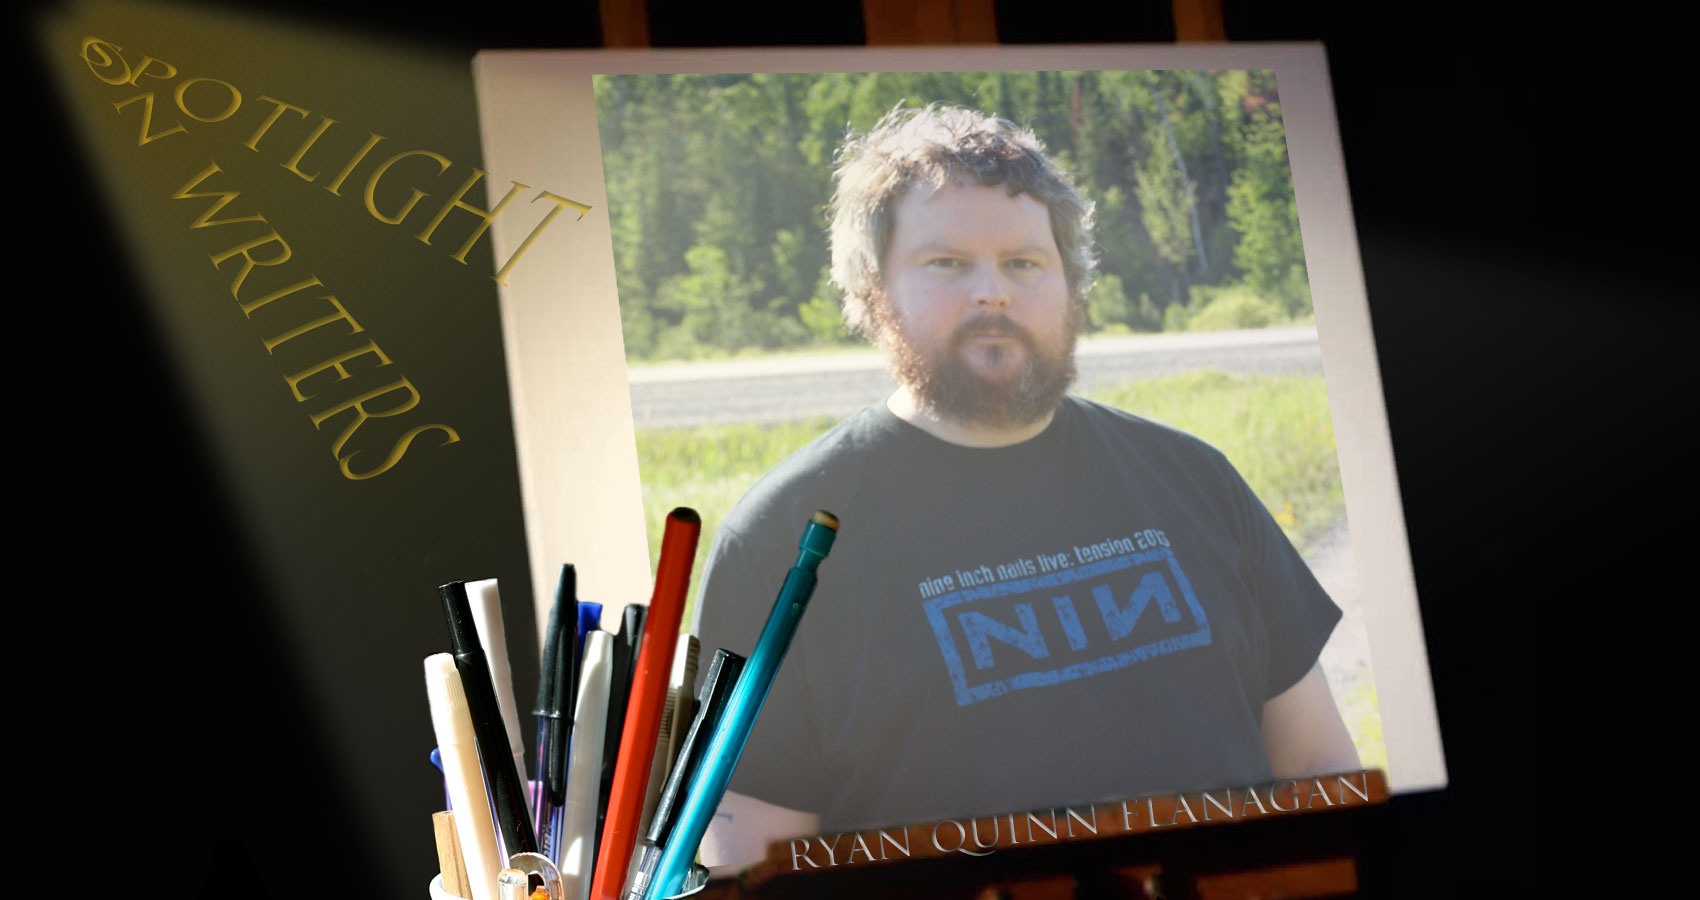 Spotlight On Writers - Ryan Quinn Flanagan at Spillwords.com